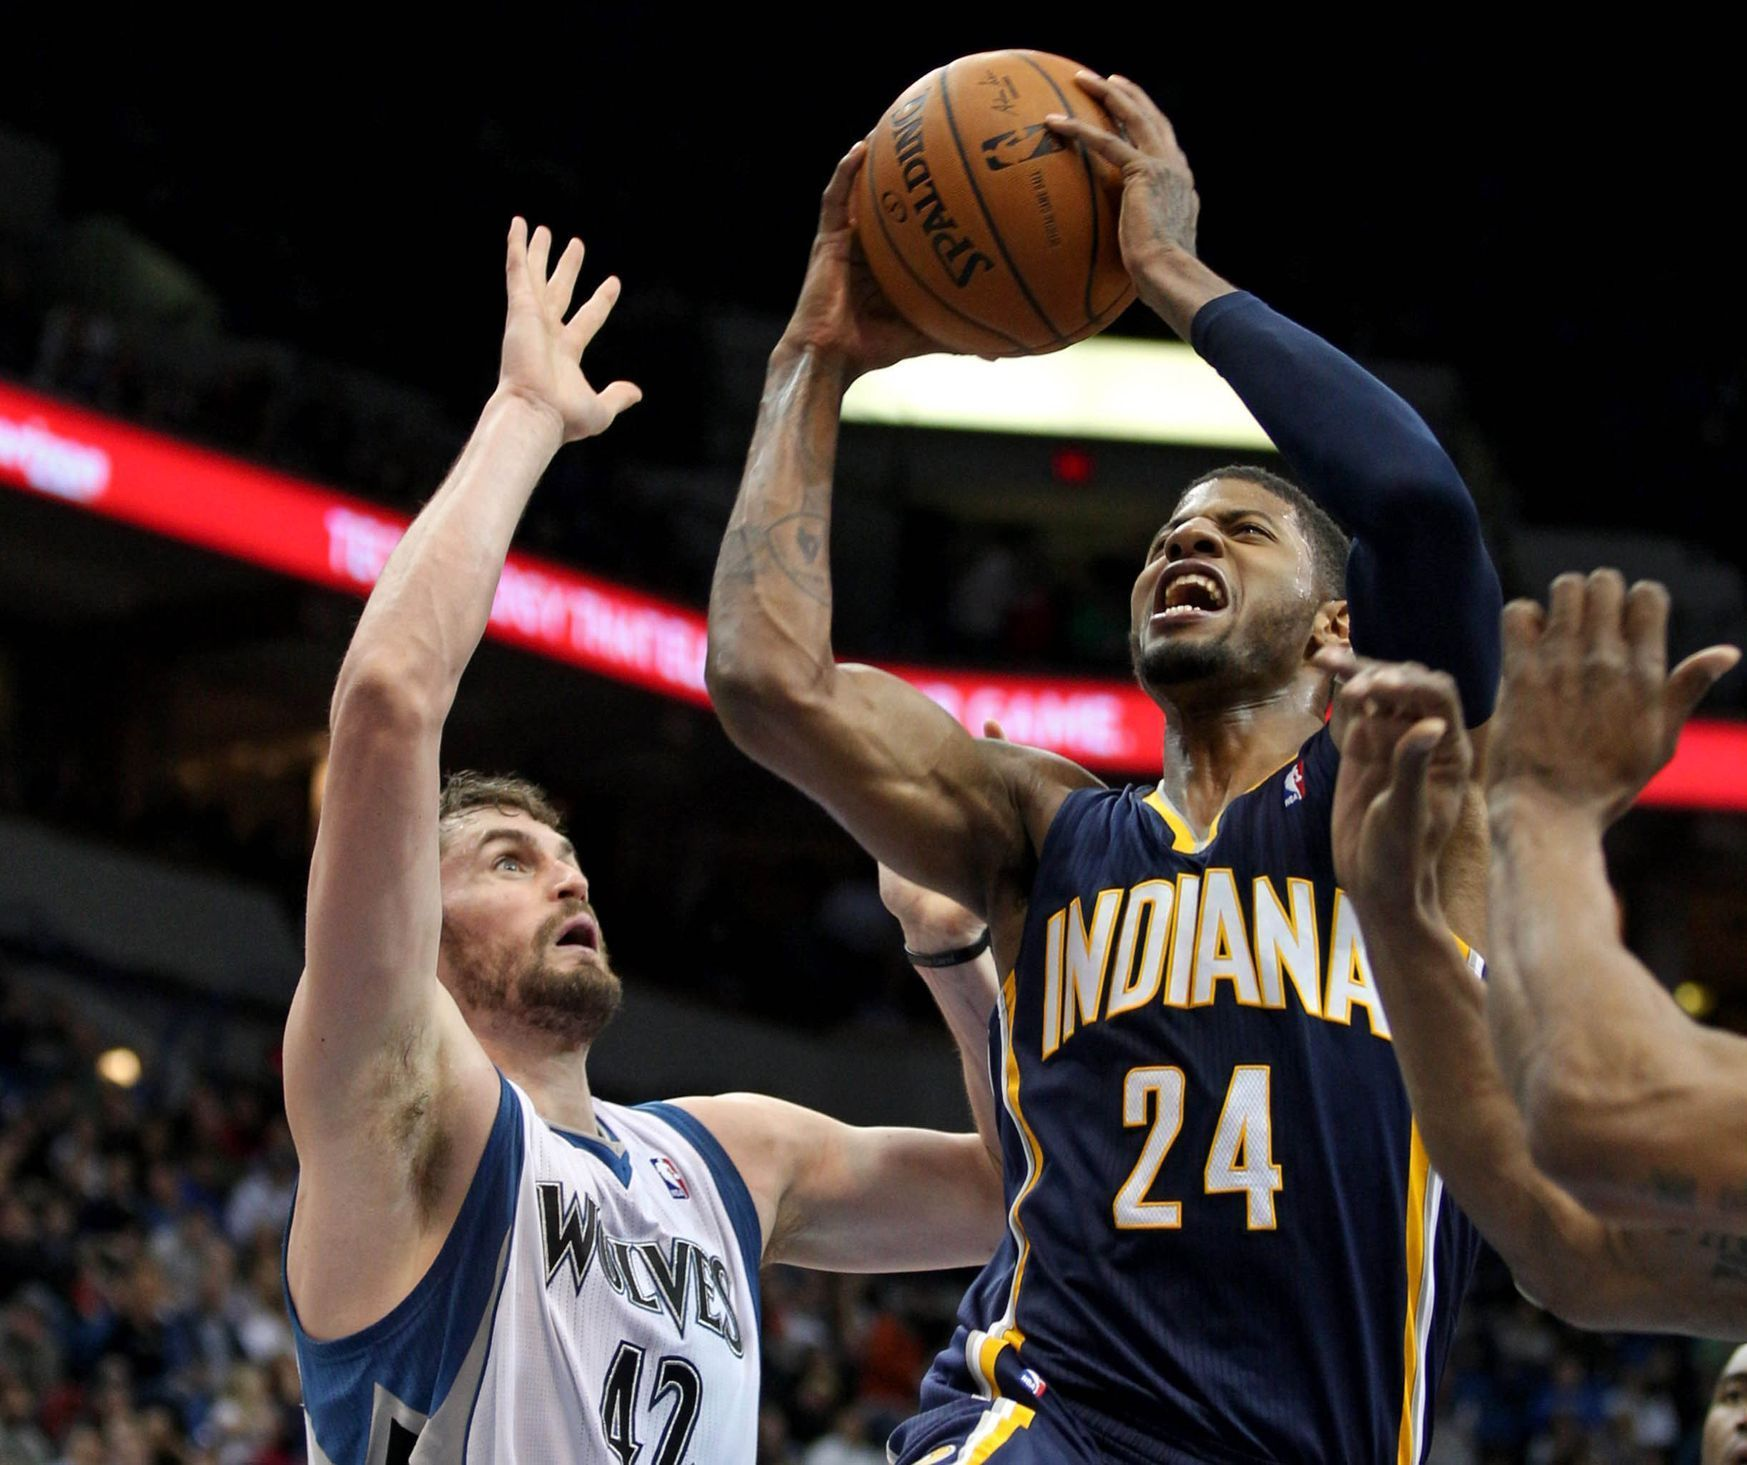 NBA: Indiana Pacers vs Minnesota Timberwolves (Kevin Love)